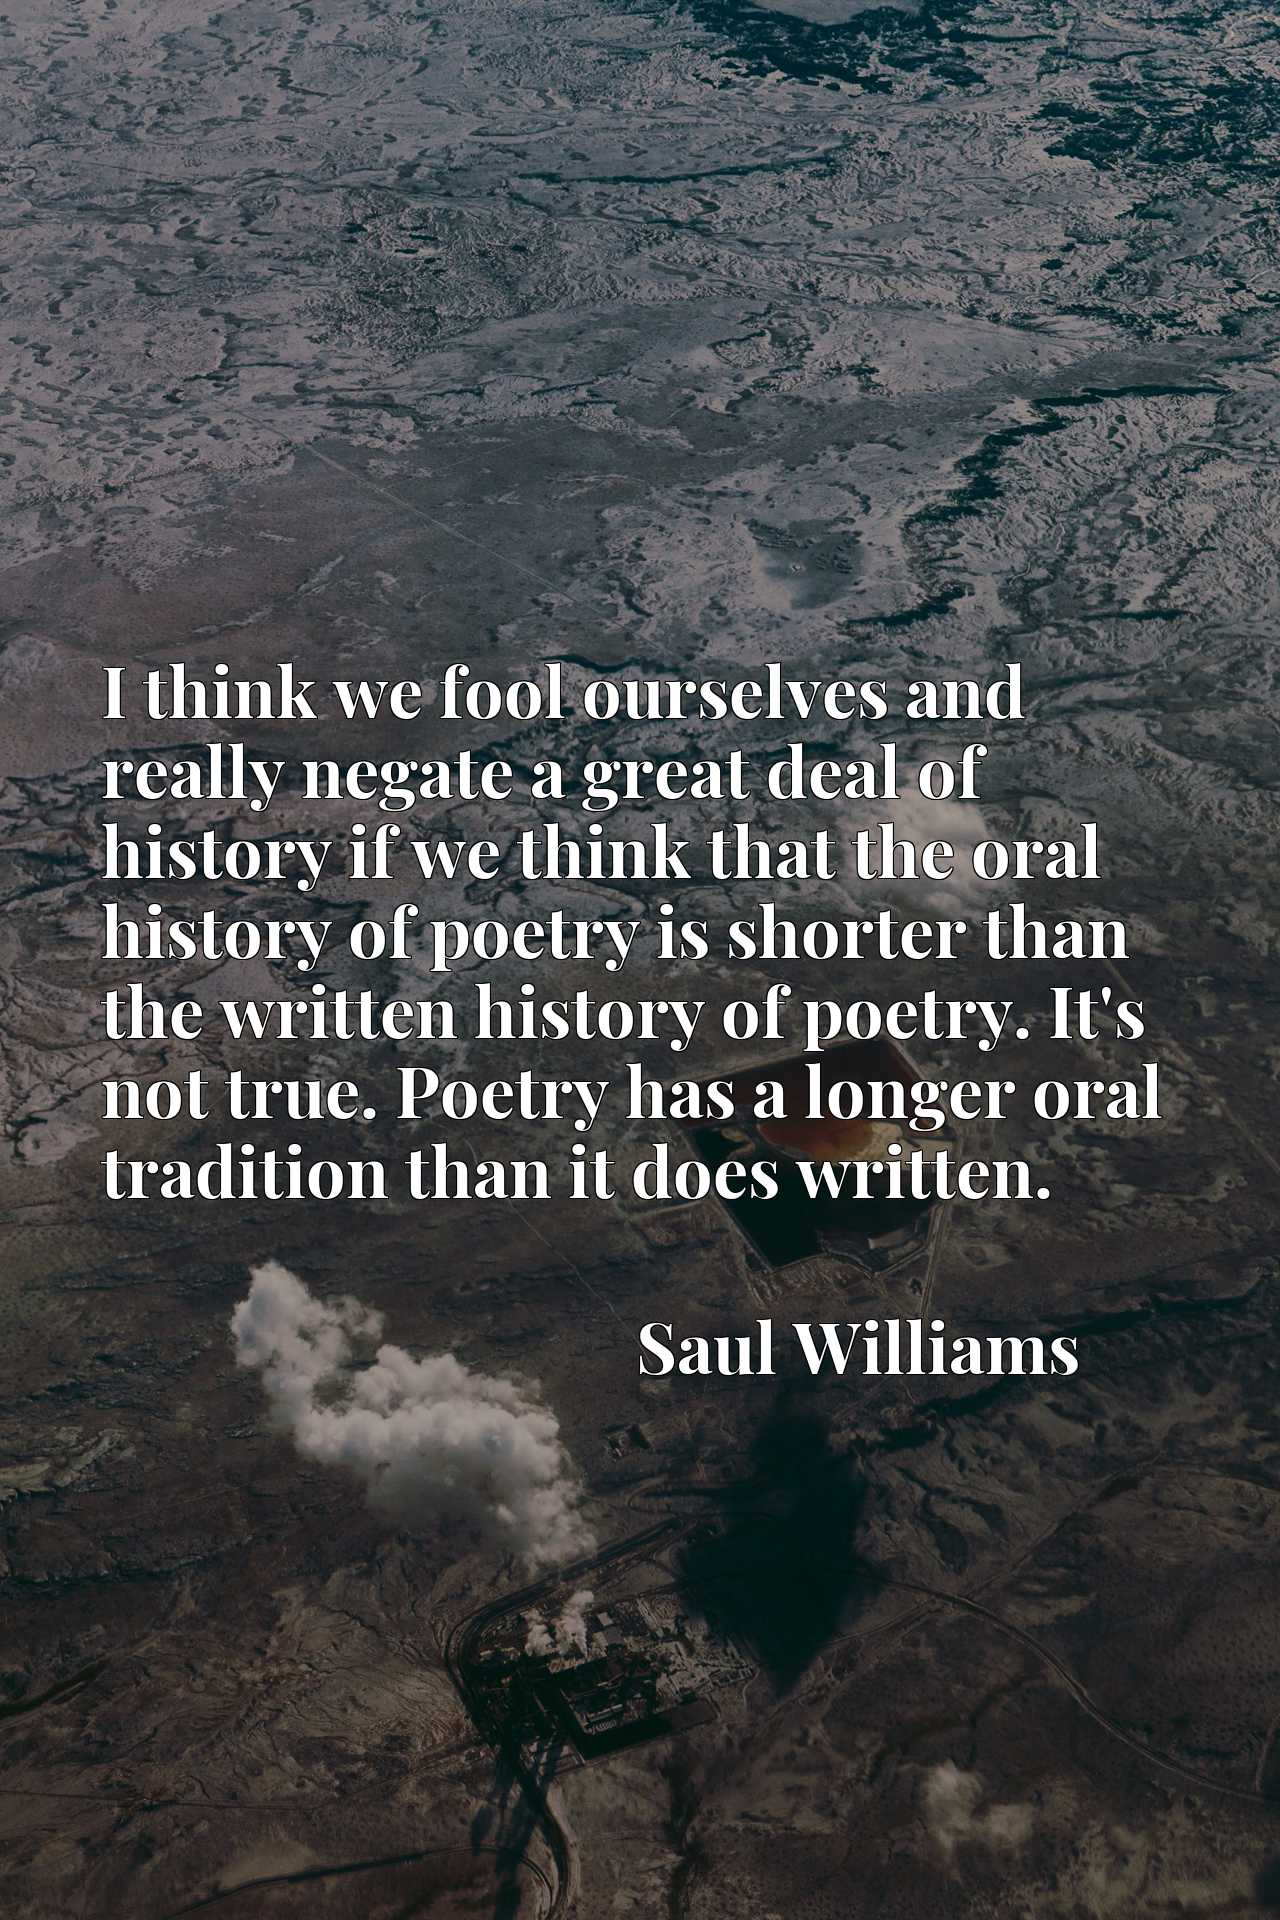 I think we fool ourselves and really negate a great deal of history if we think that the oral history of poetry is shorter than the written history of poetry. It's not true. Poetry has a longer oral tradition than it does written.